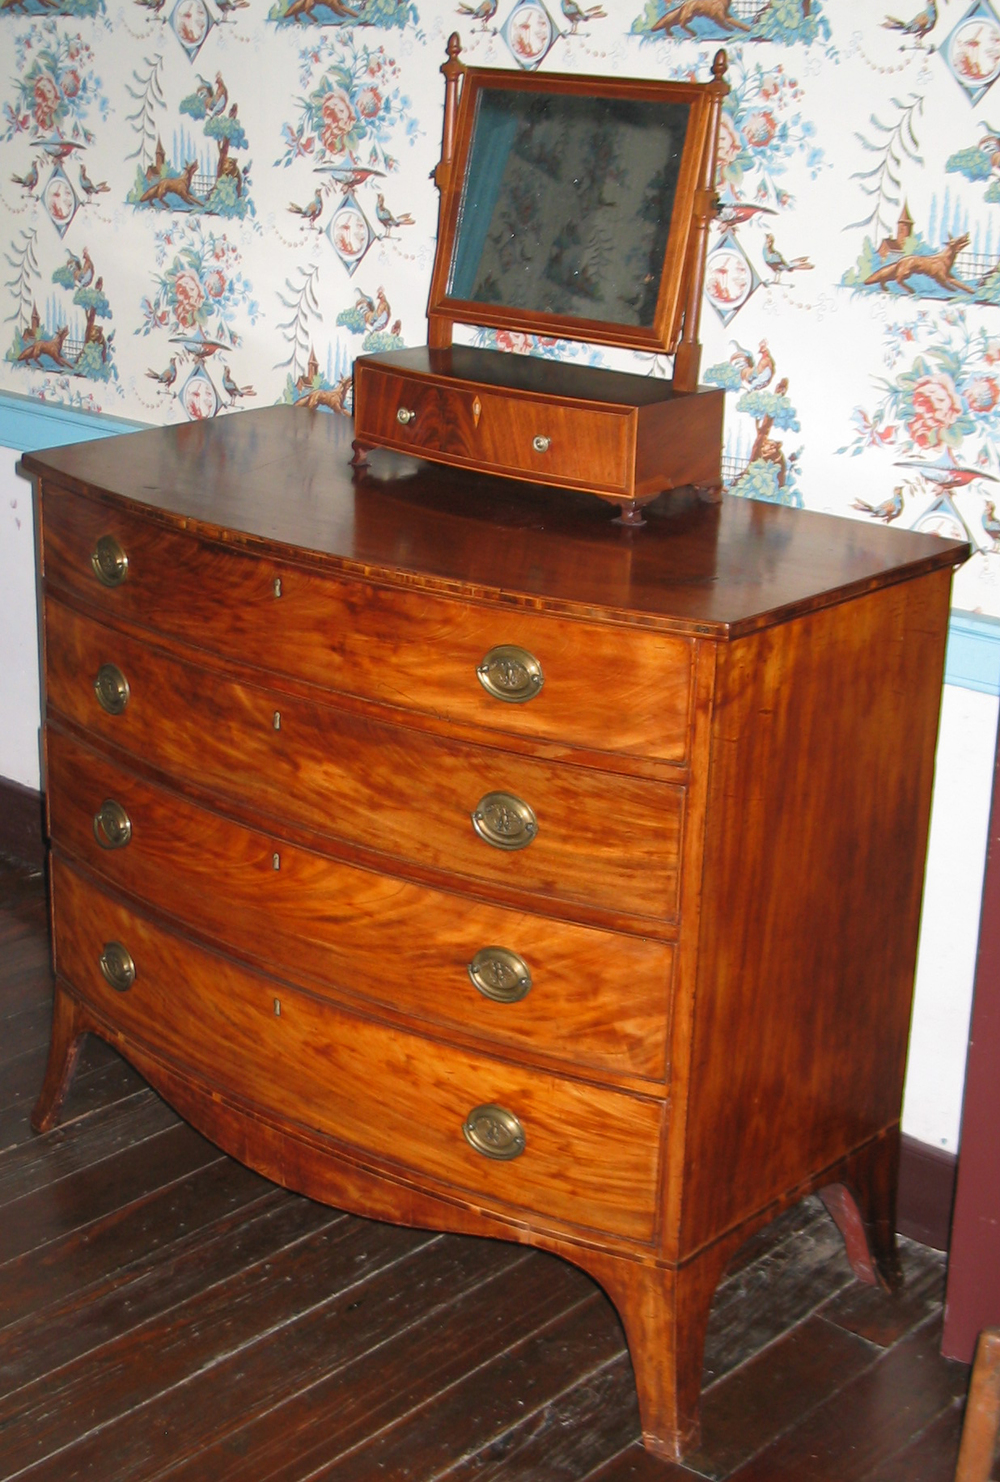 Basic Care and Maintenance for Antique Furniture - Spring Cleaning! Basic Care And Maintenance For Antique Furniture